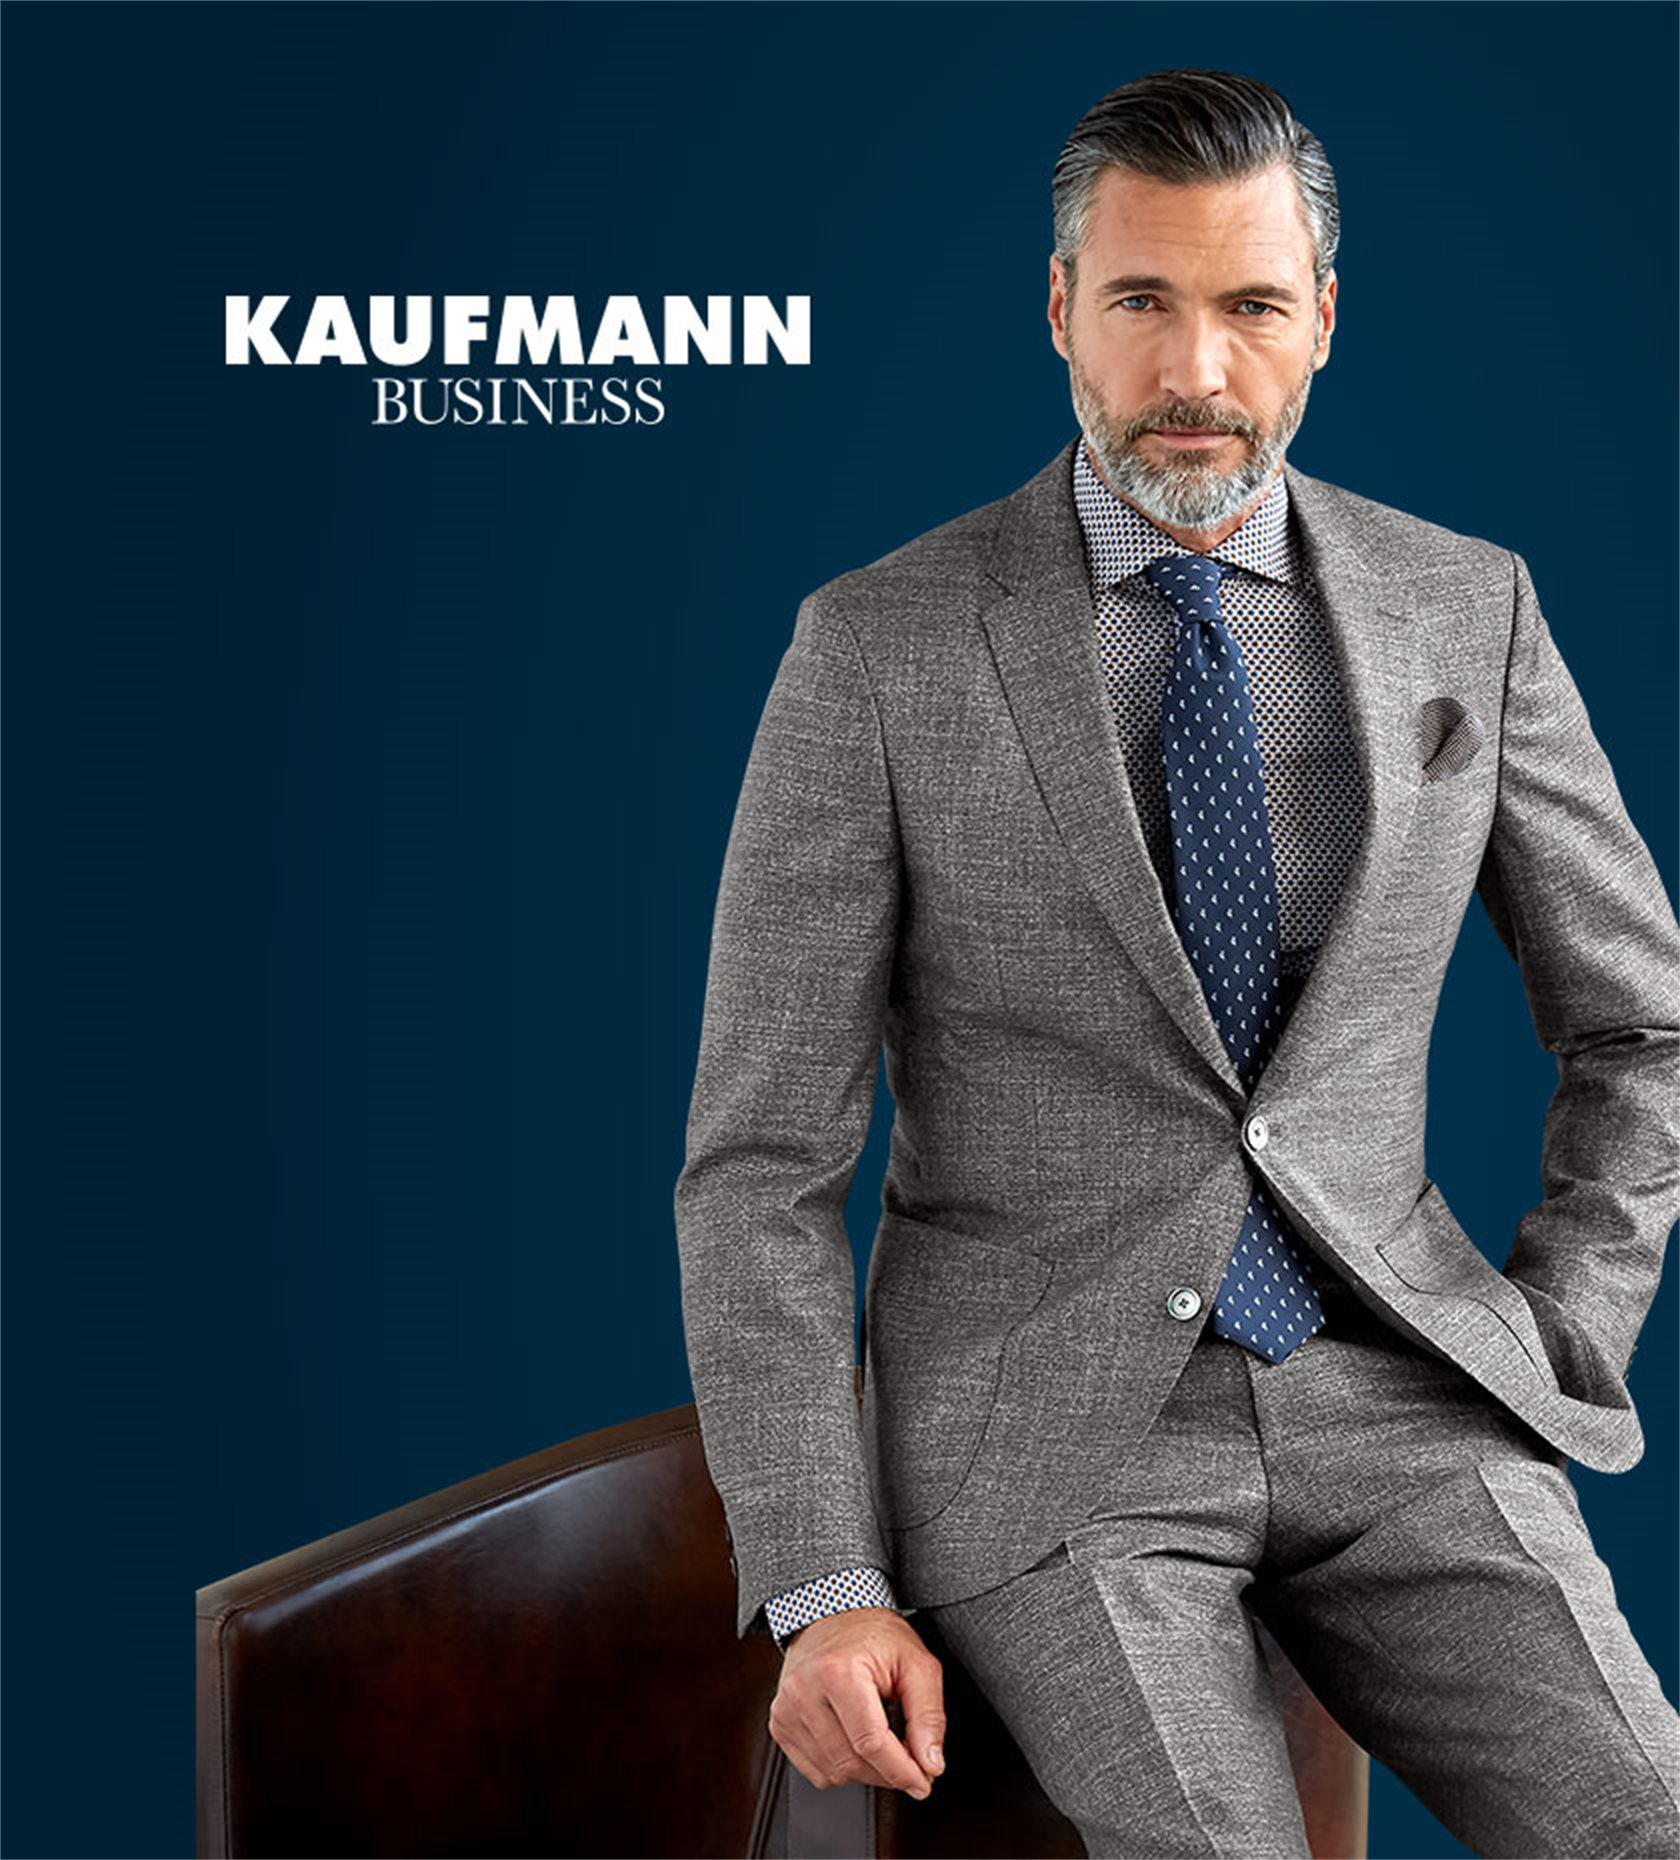 KAUFMANN Business